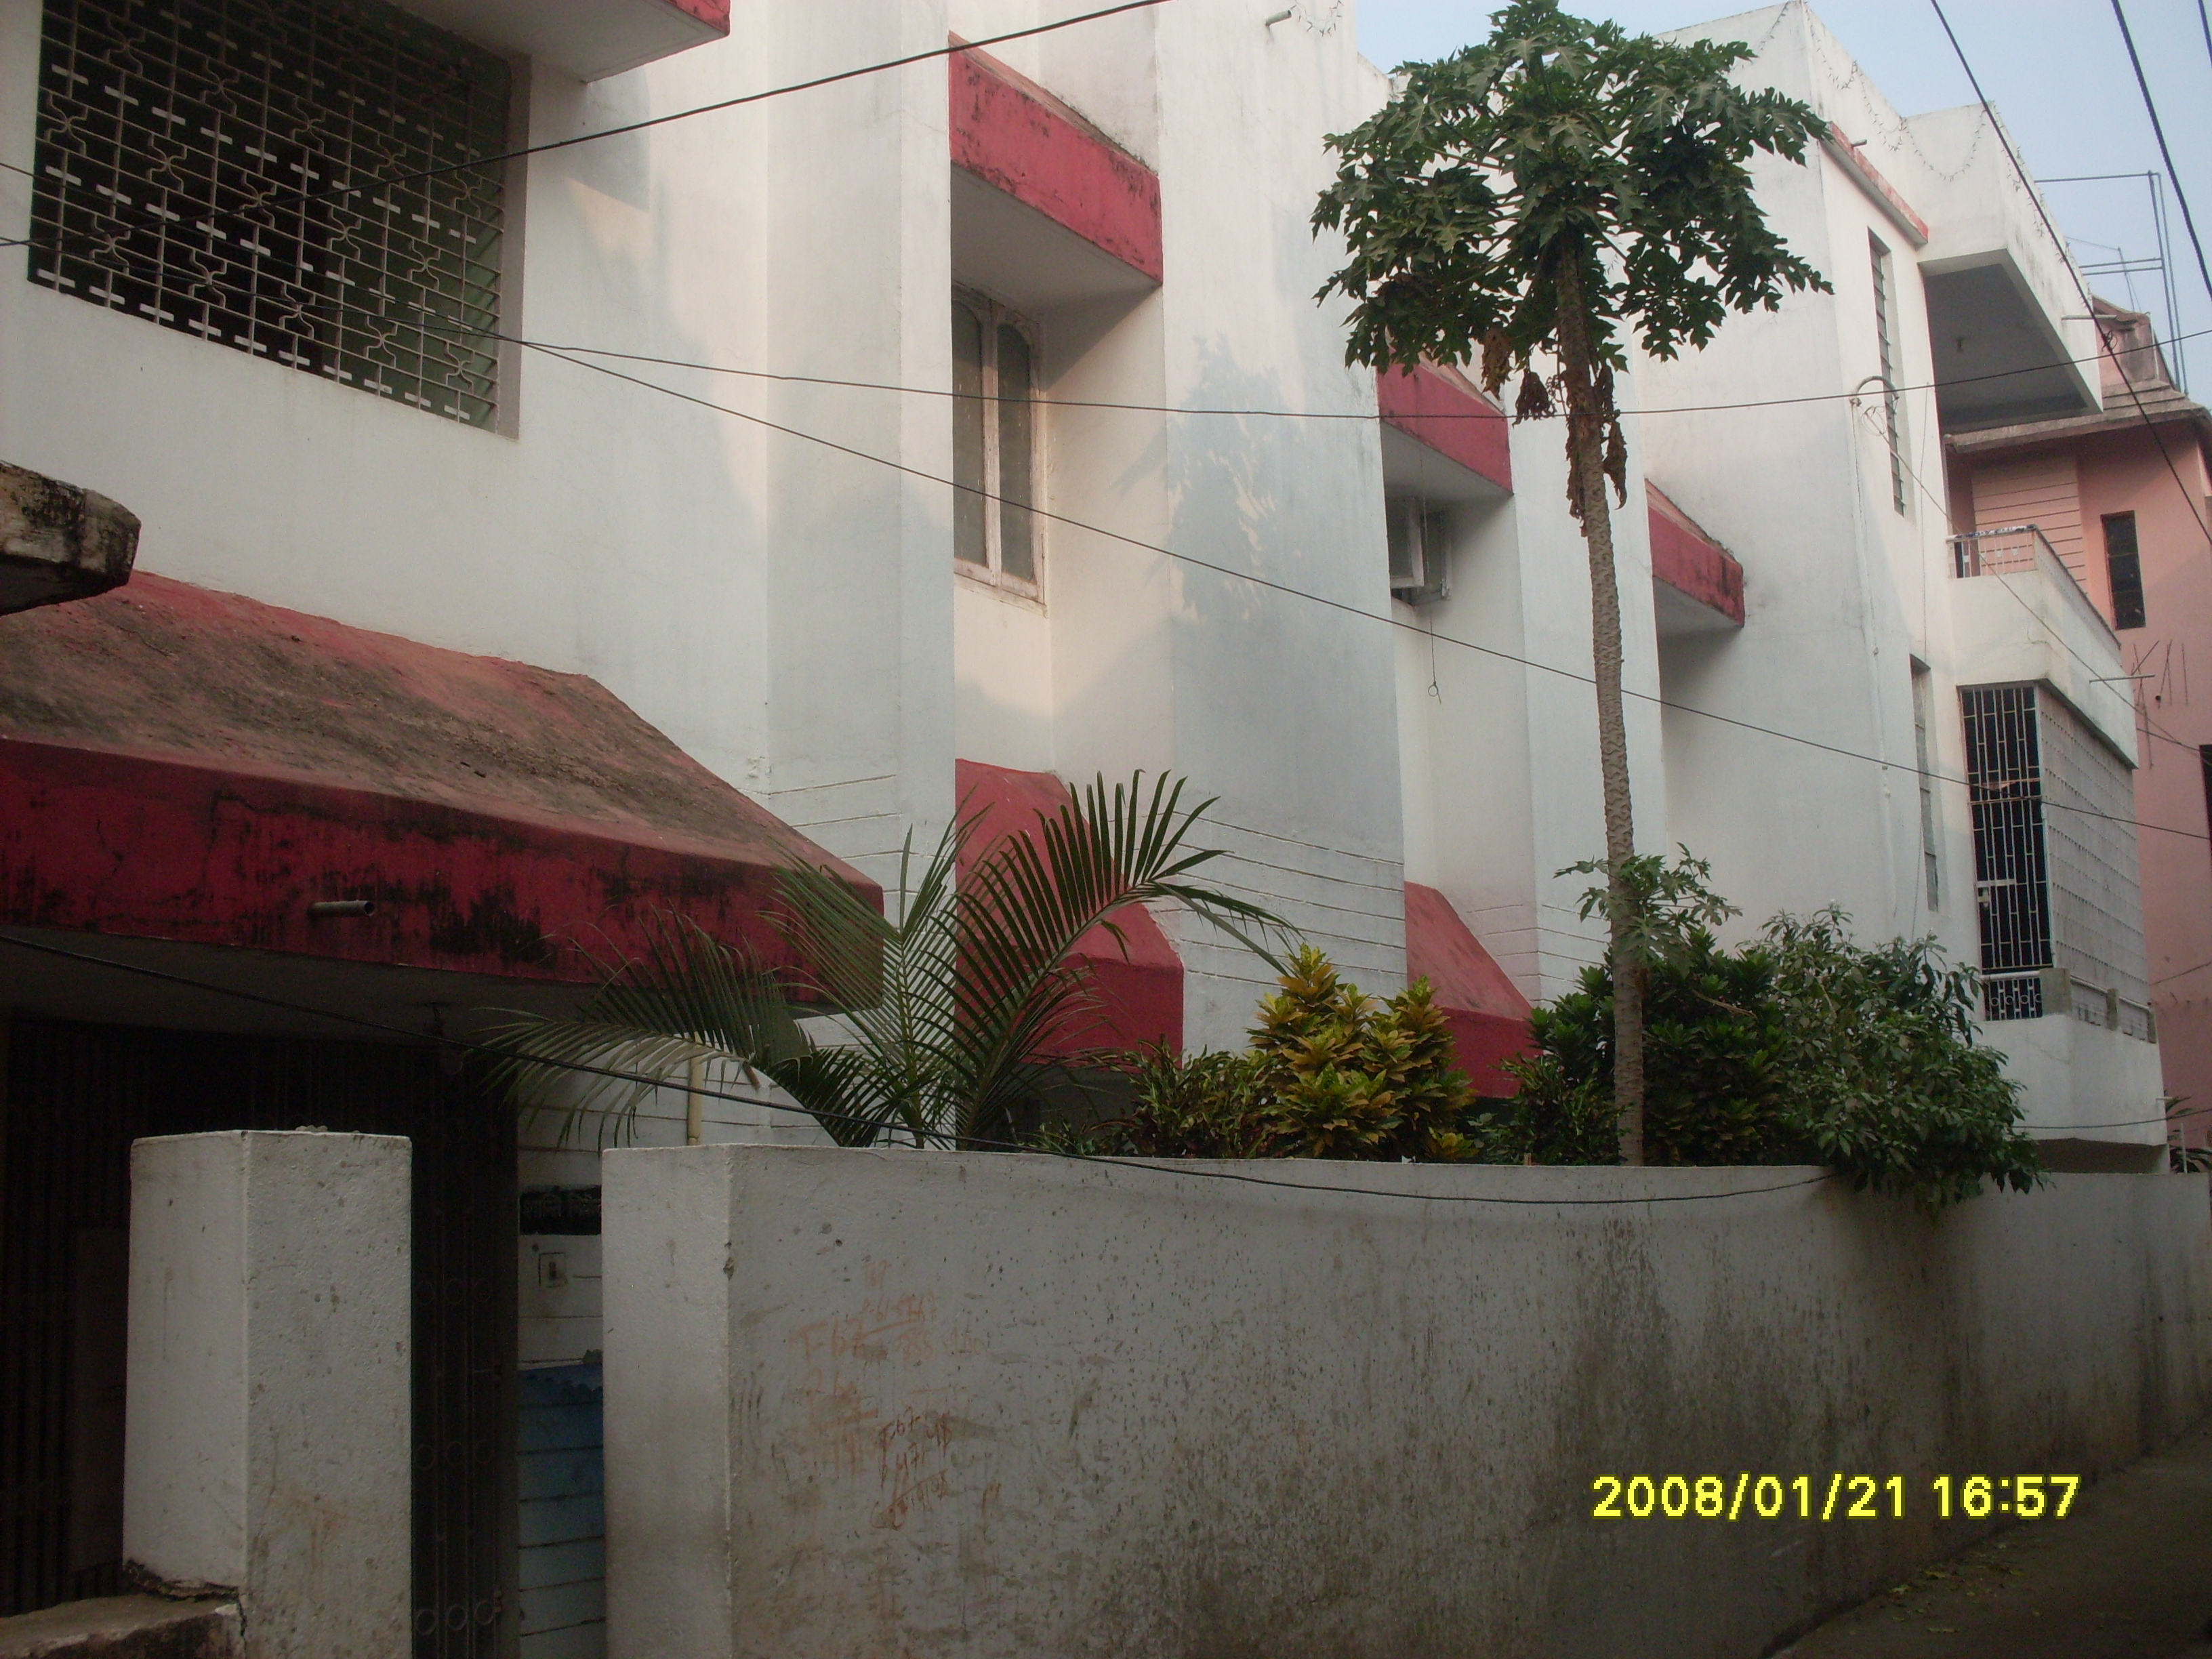 1 Room, Kitchen, Bath+balcony For Rent